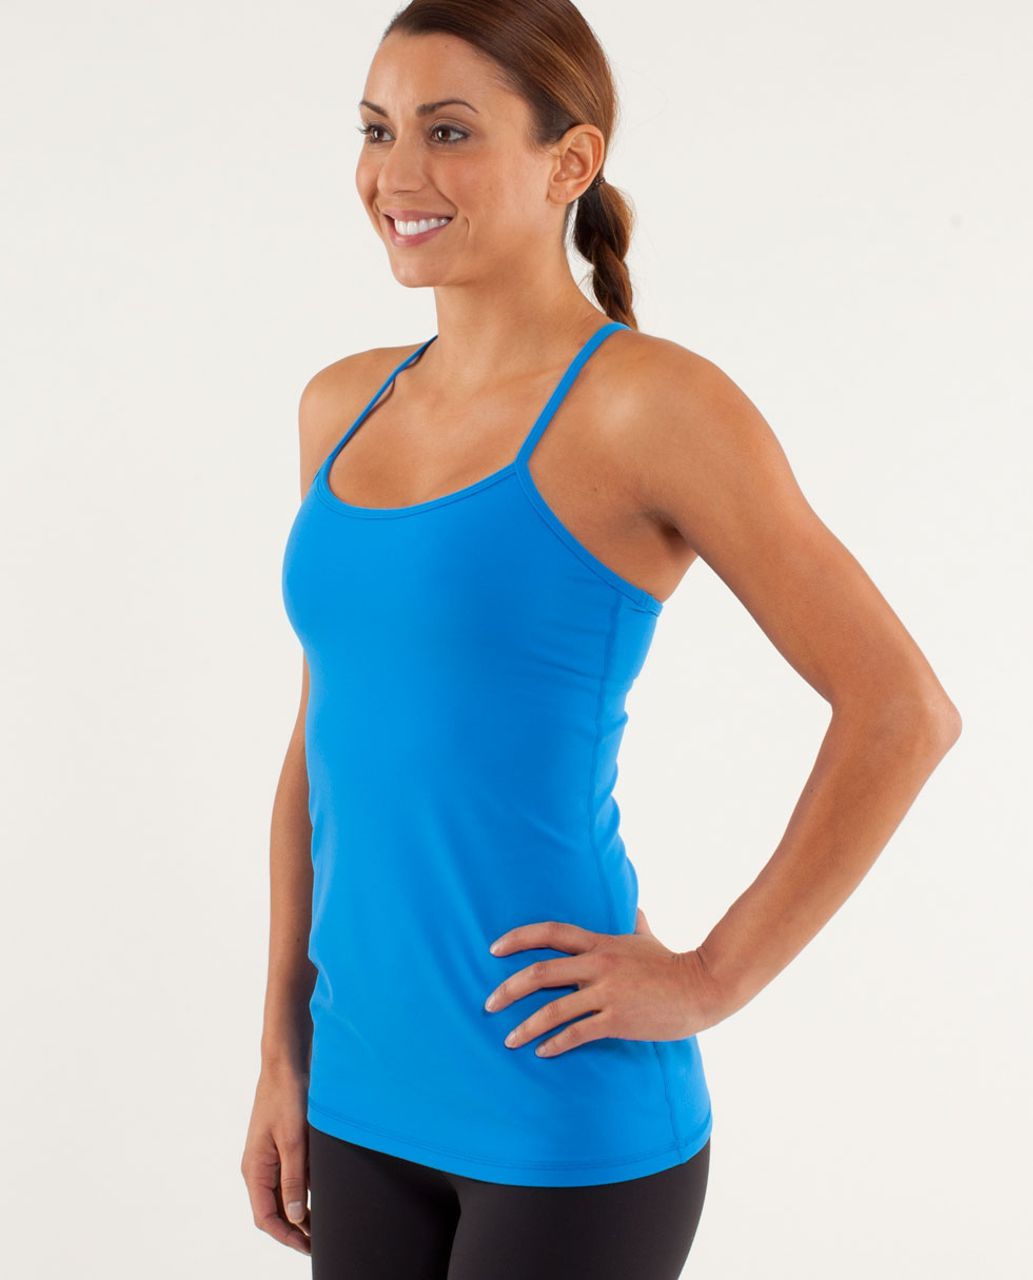 Lululemon Power Y Tank *Luon Light - Beaming Blue